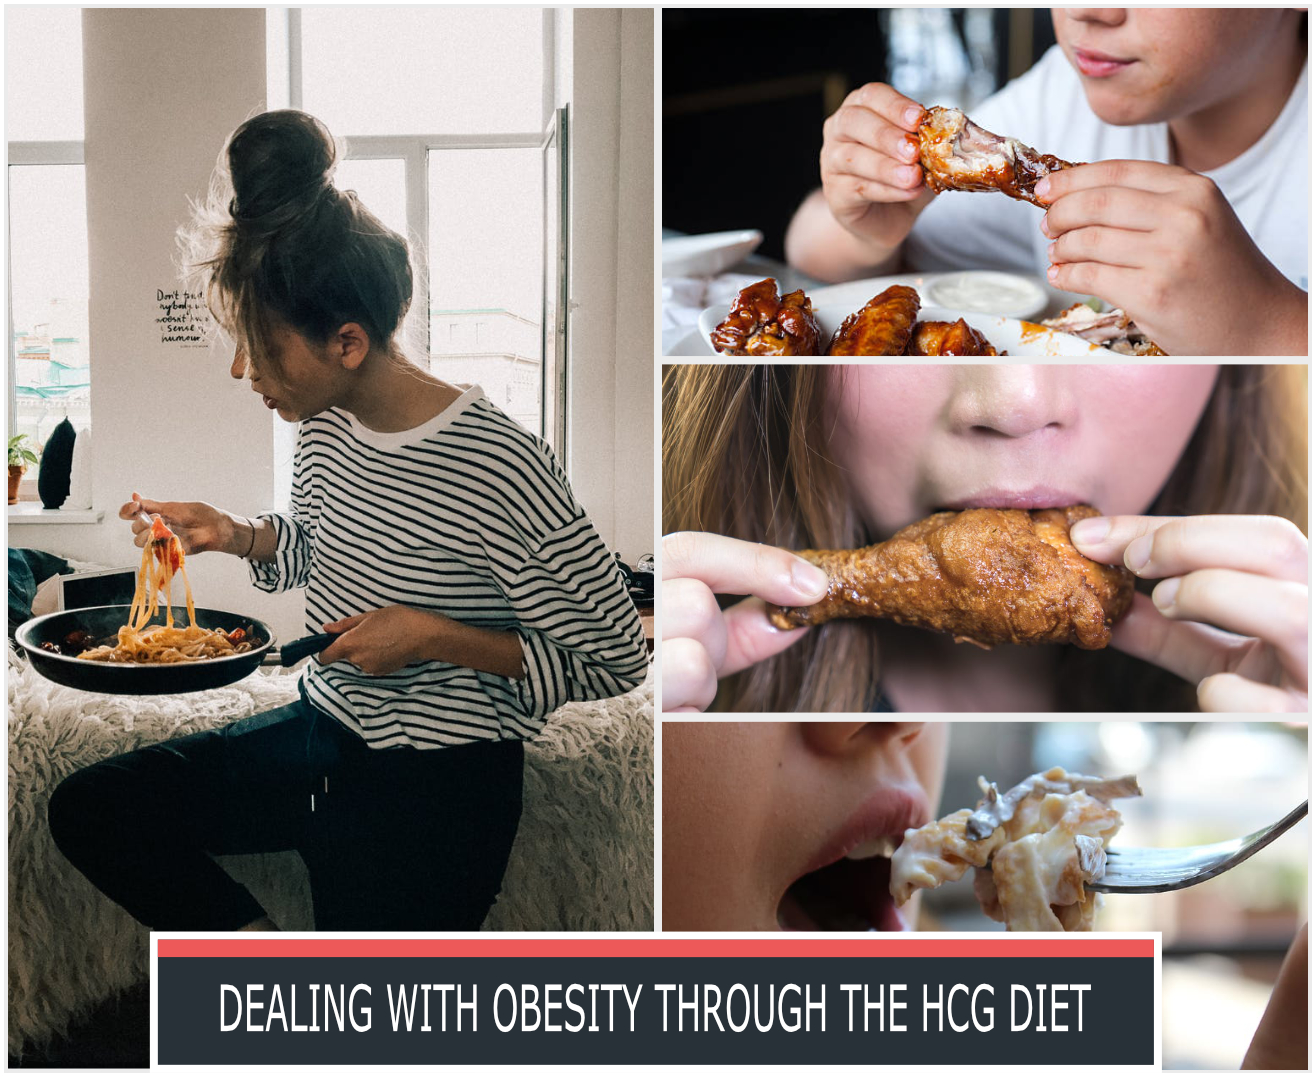 DEALING WITH OBESITY THROUGH THE HCG DIET